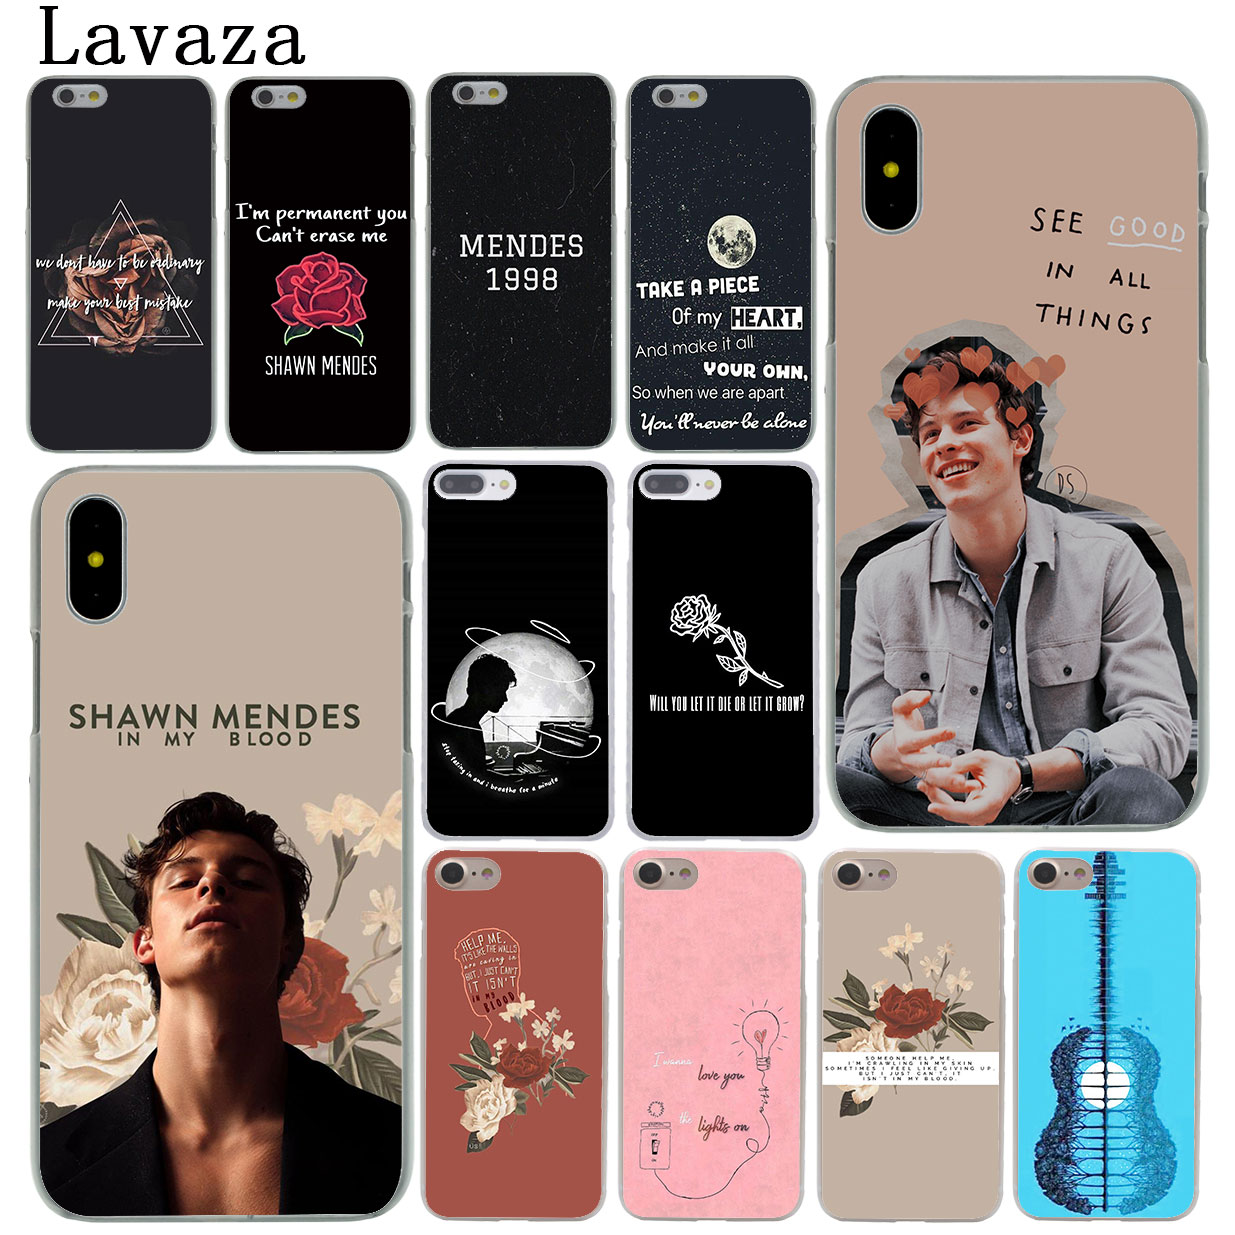 US $1 94 24% OFF|Lavaza Pop singer Shawn Mendes Magcon 98 Hard Cover Case  for iPhone X XS Max XR 6 6S 7 8 Plus 5 5S SE 5C 4S 10 Phone Cases 8Plus-in